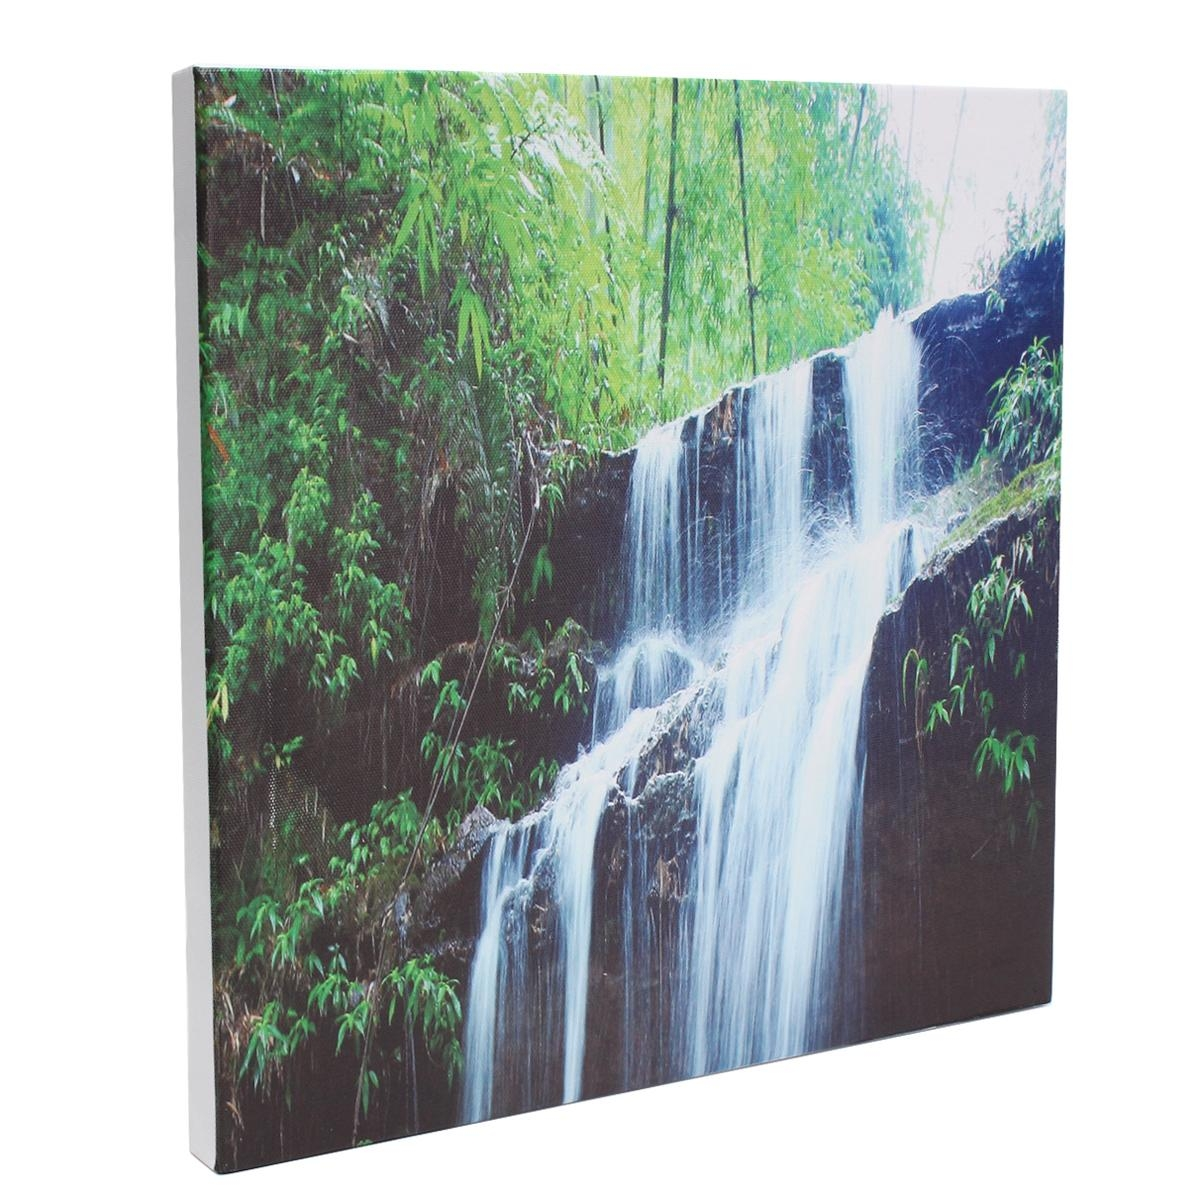 20 Ideas Of Waterfall Wall Art  Wall Art Ideas. Elegant House Decoration Ideas. Rooms To Rent In Elgin. Tiffany Blue Decor. French Themed Bedroom Decor. Four Season Room Kits. Decorative Light Poles. Decorative Fluorescent Light Bulbs. Painting Living Room